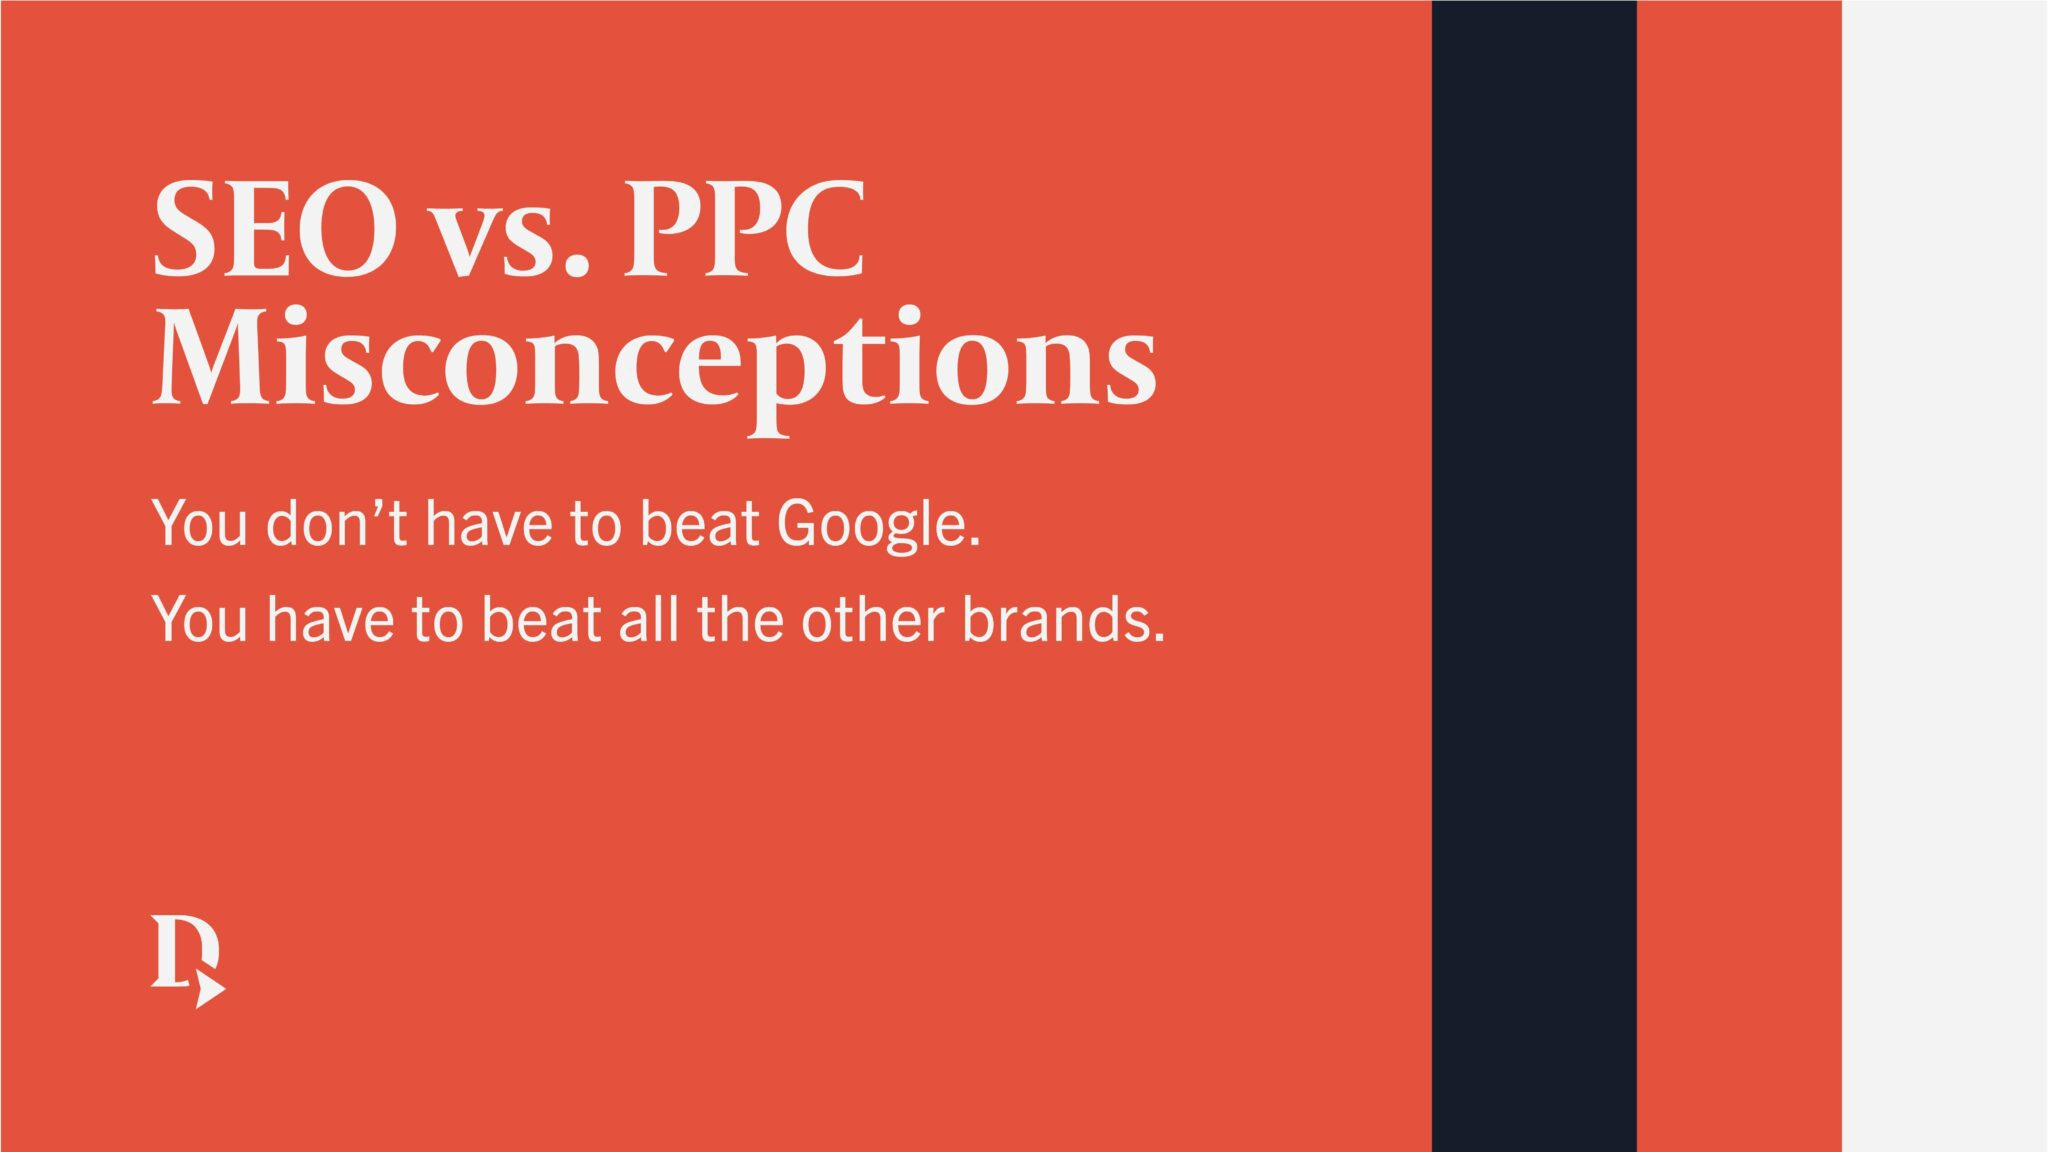 SEO vs. PPC misconception about beating Google.